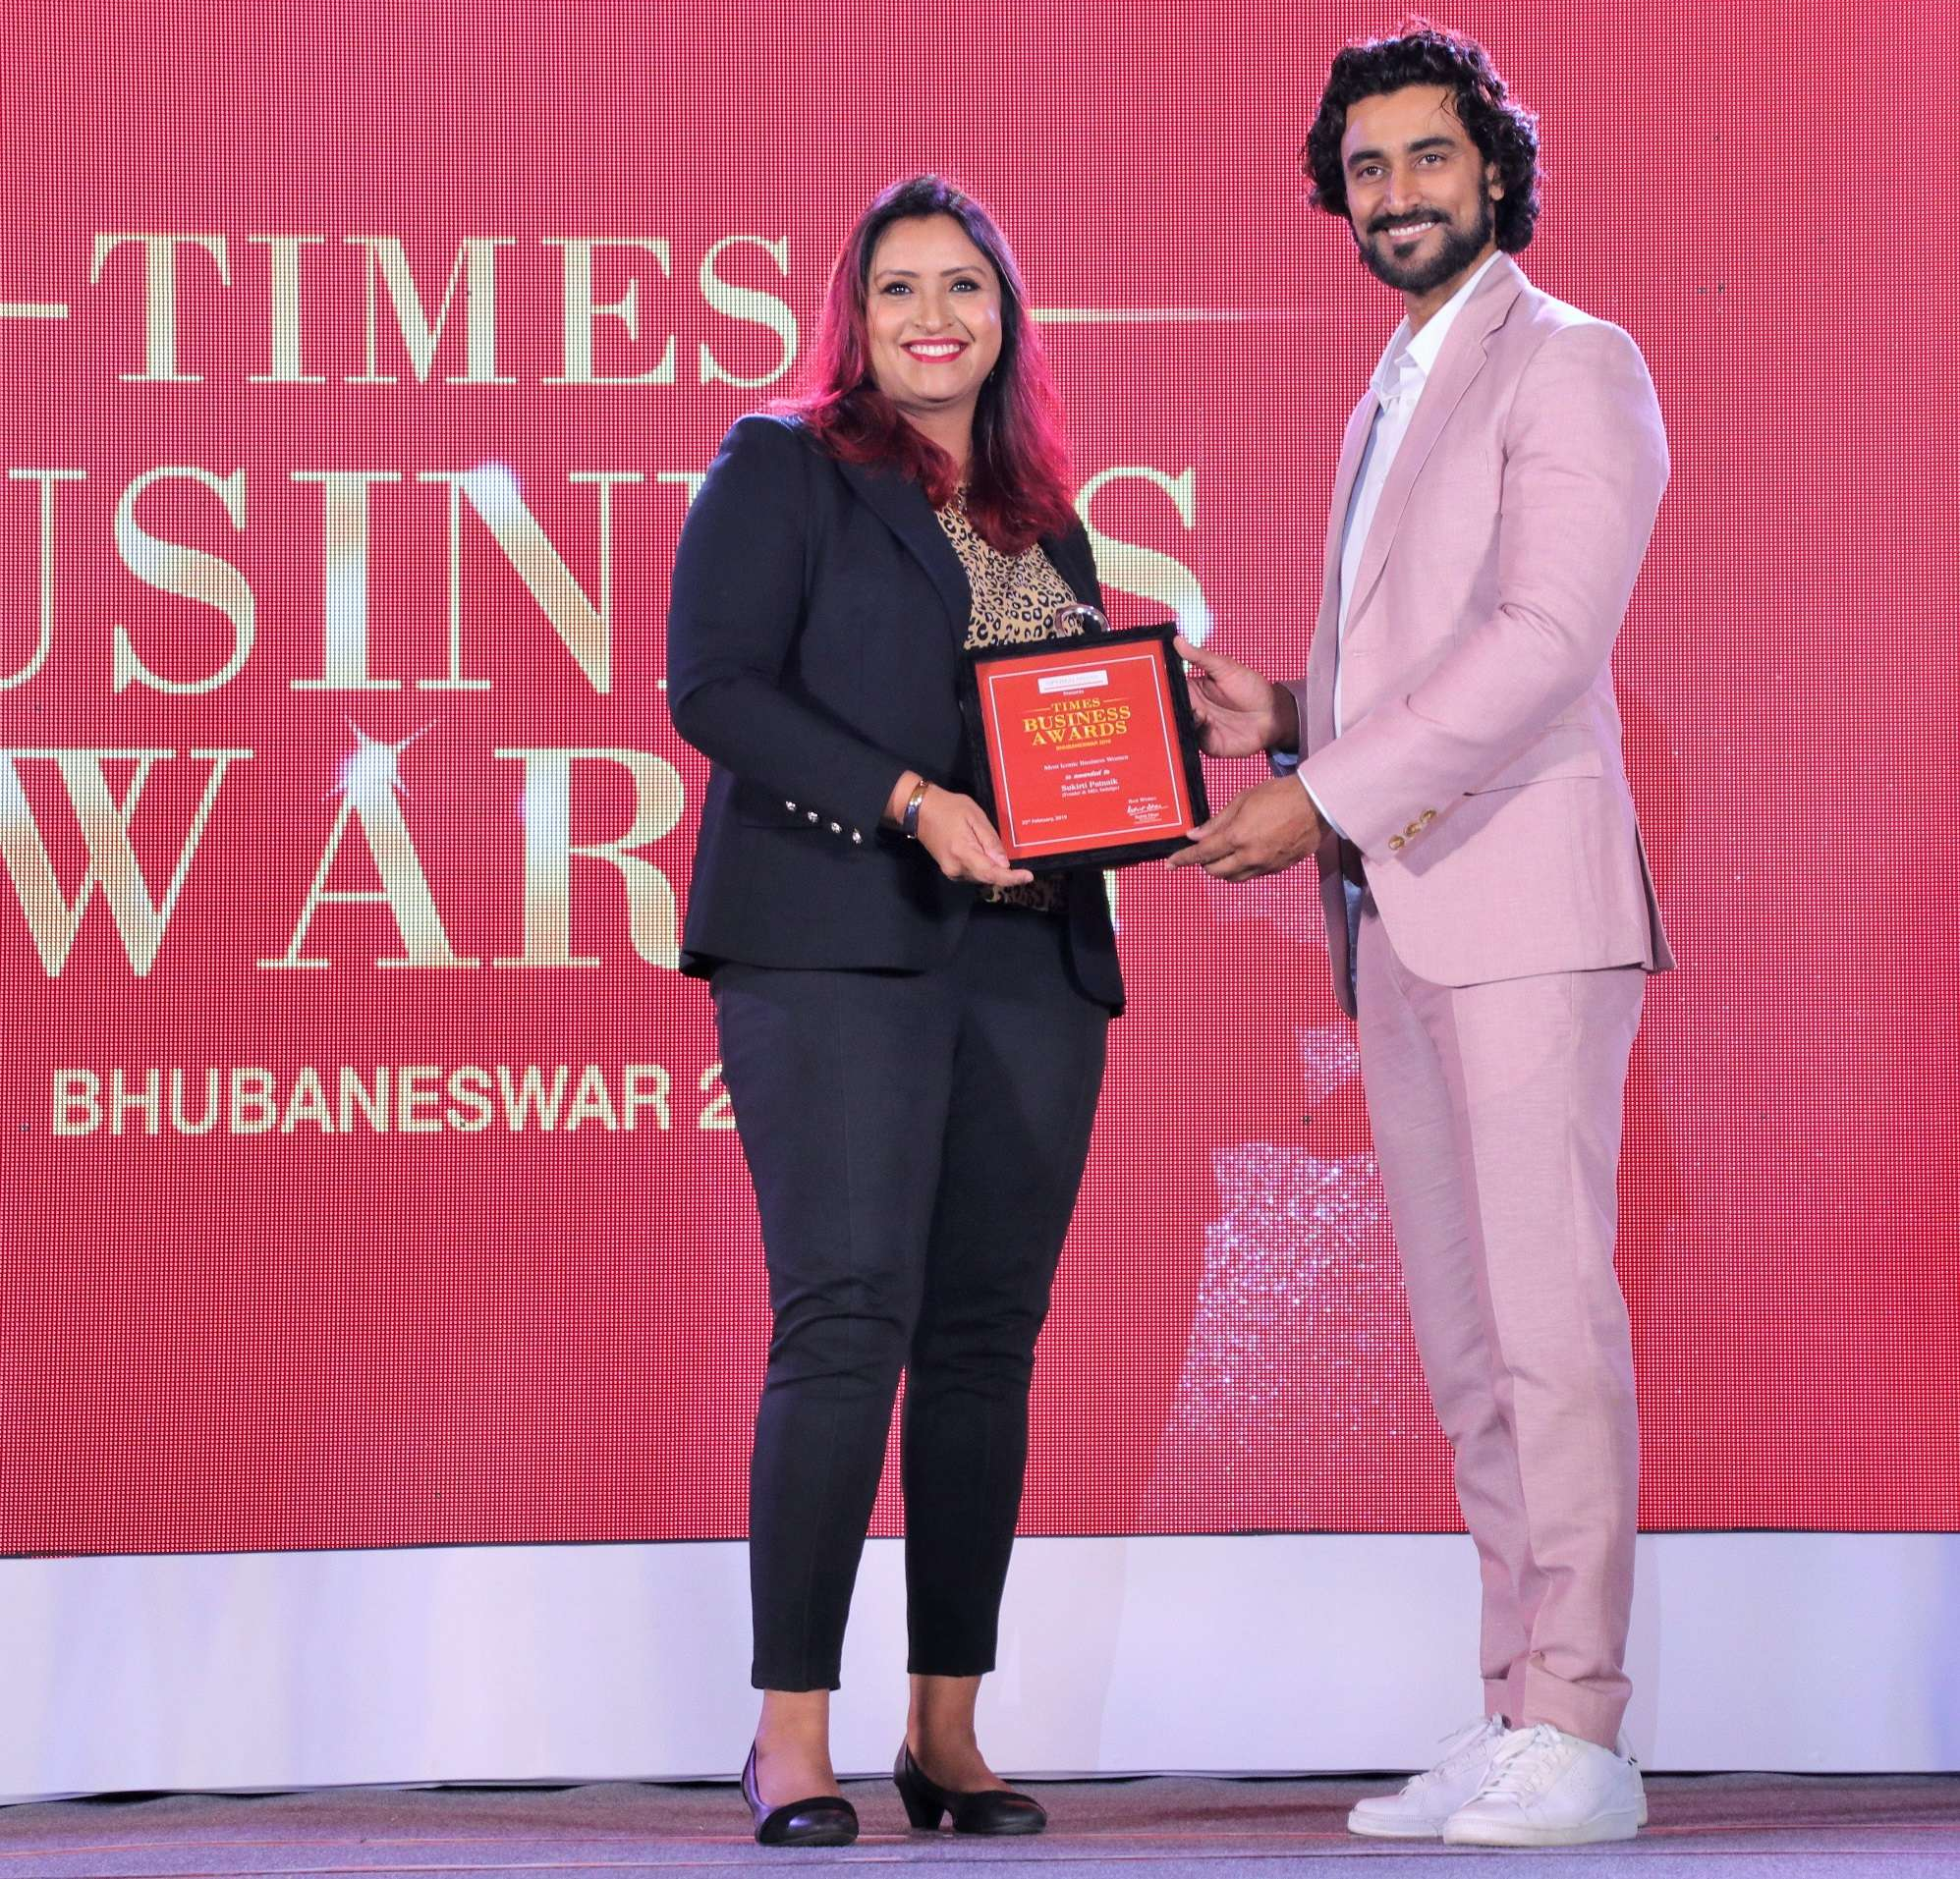 Sukirti Patnaik, founder and MD, Indulge recieving award from Kunal Kapoor